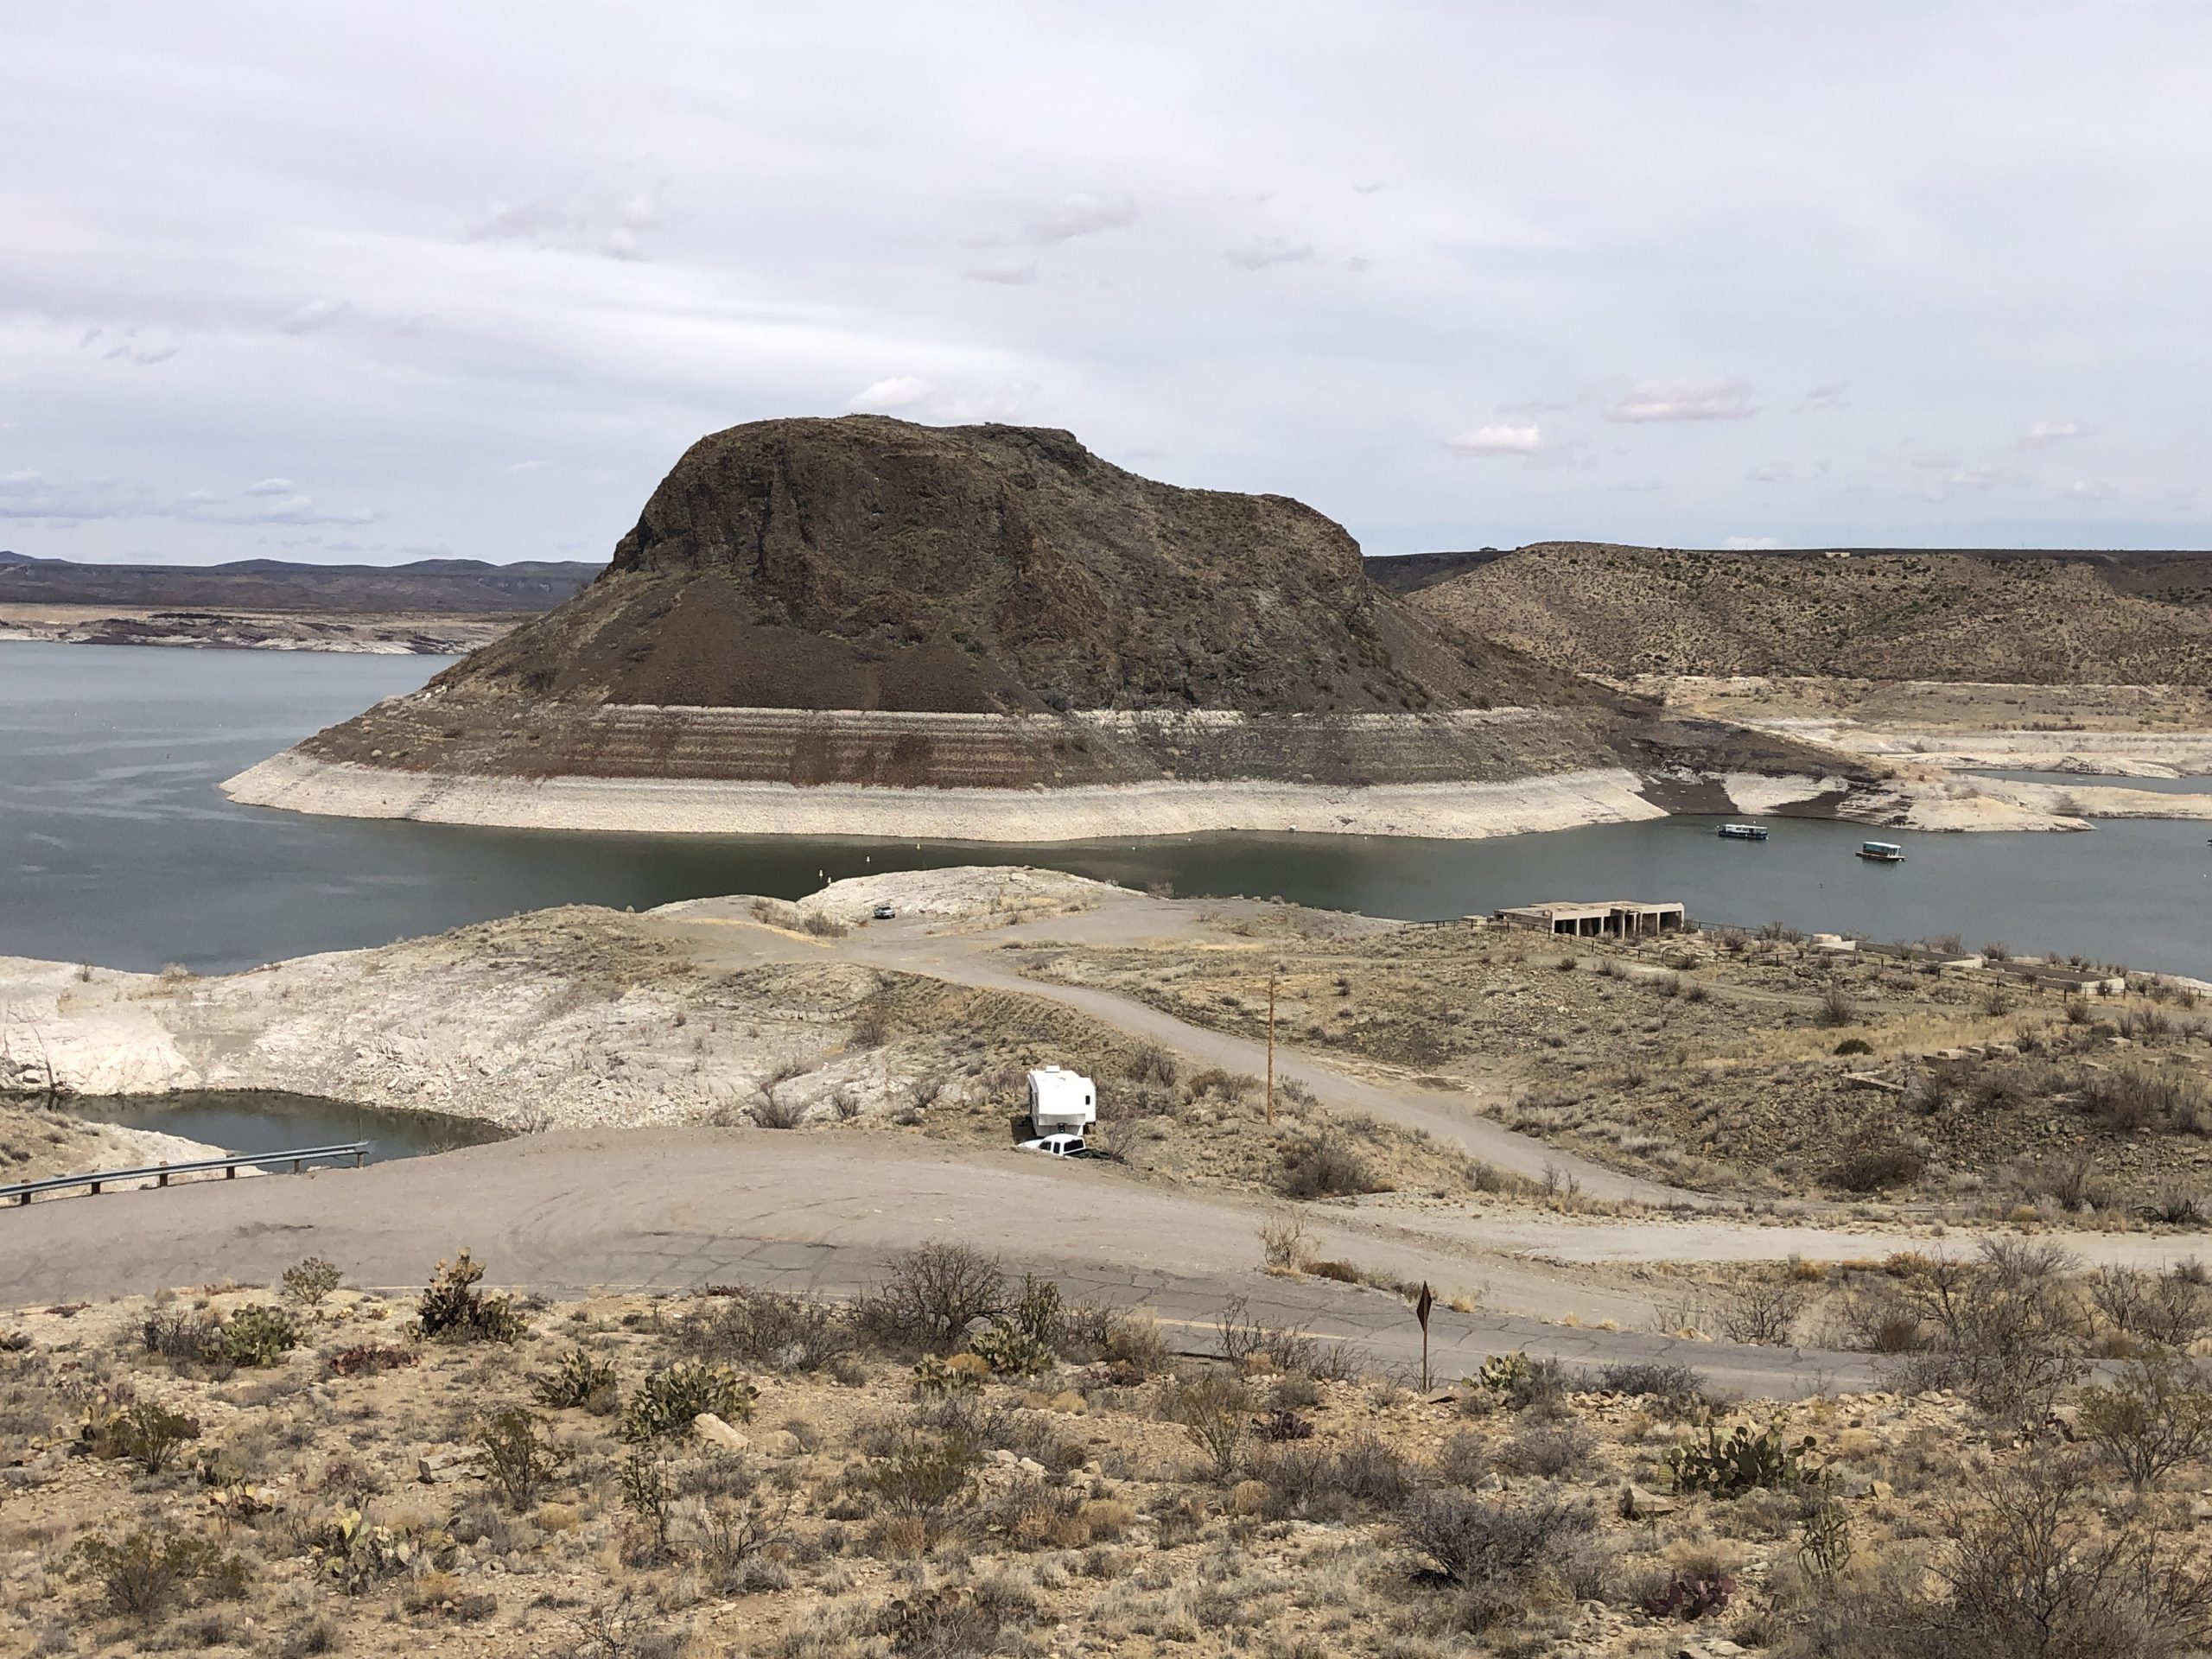 Elephant Butte Reservoir in New Mexico